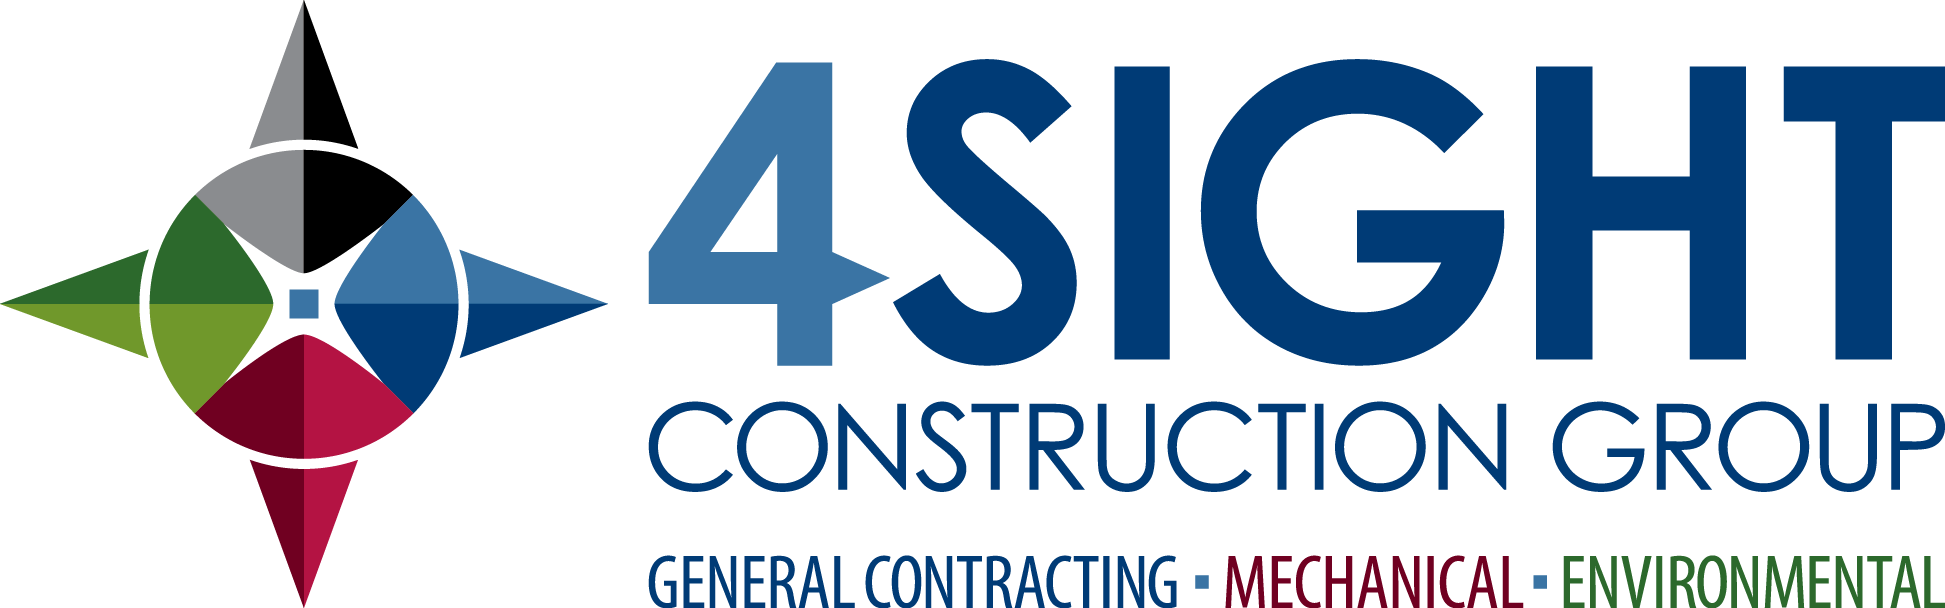 Full Service General Contractor for Residential, Multi-Family, and Commercial Construction